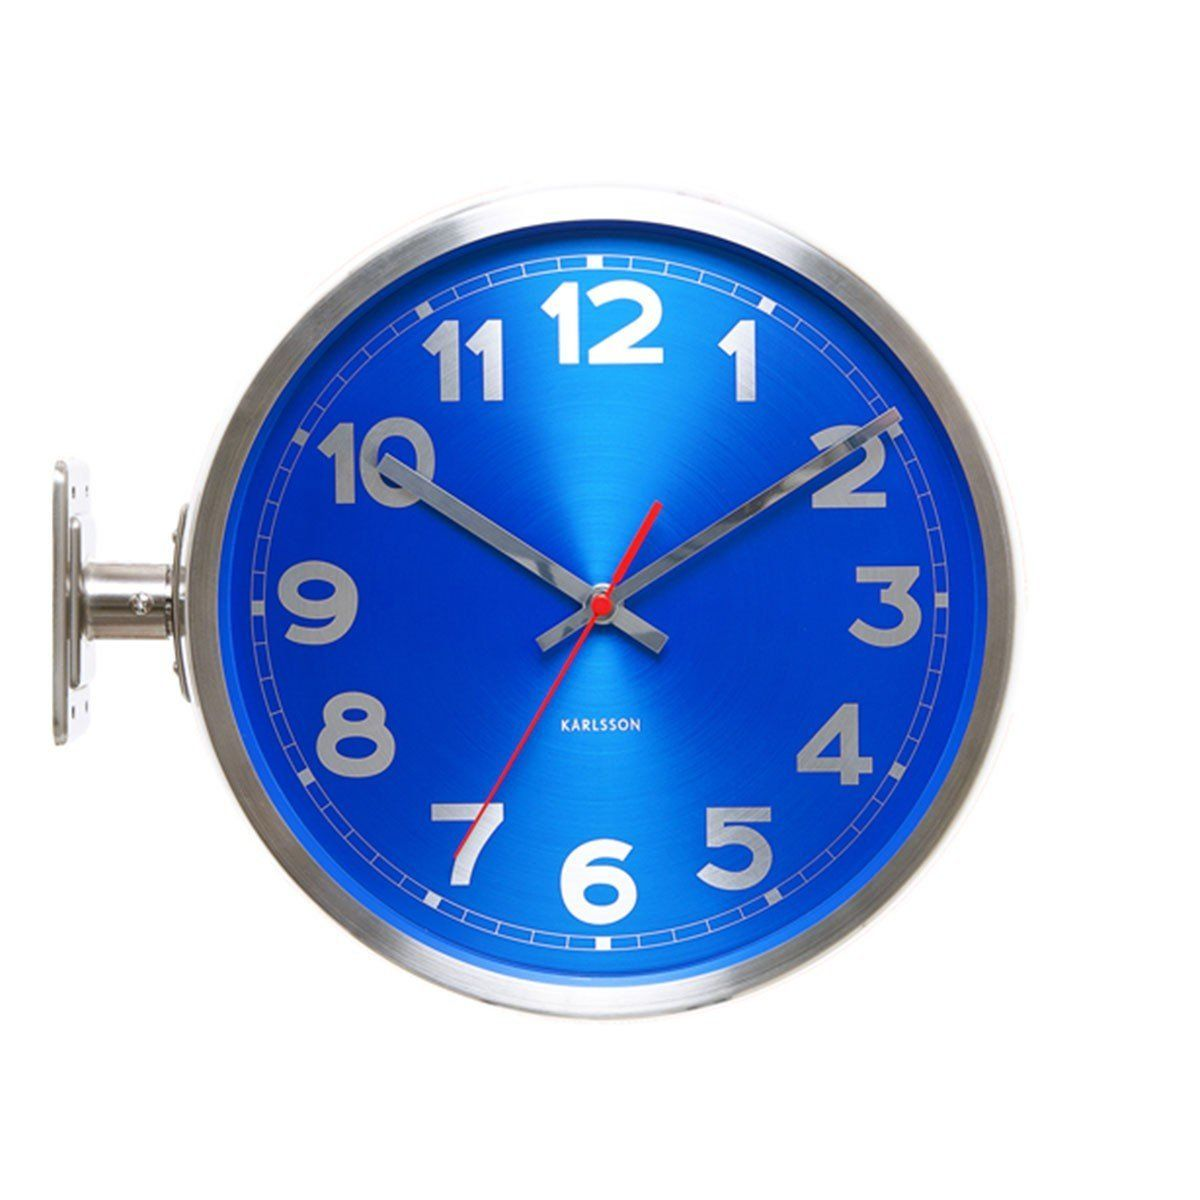 Blue Kitchen Clock Karlsson Double Sided Stainless Steel Wall Clock Blue